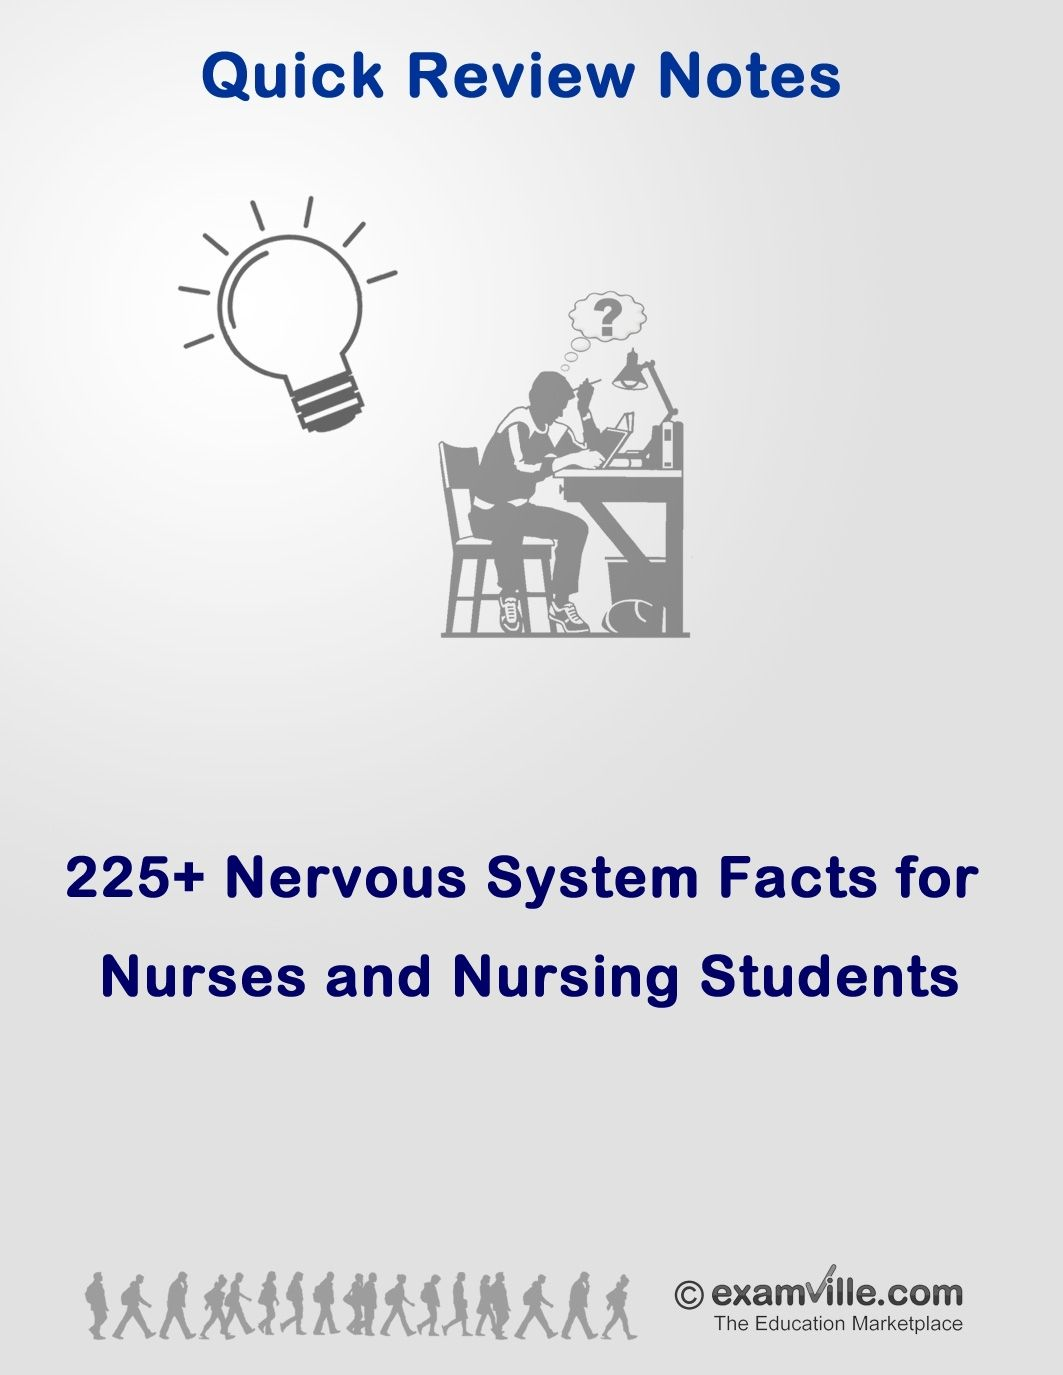 225+ Human Nervous System Facts for Nursing and Health Science Students